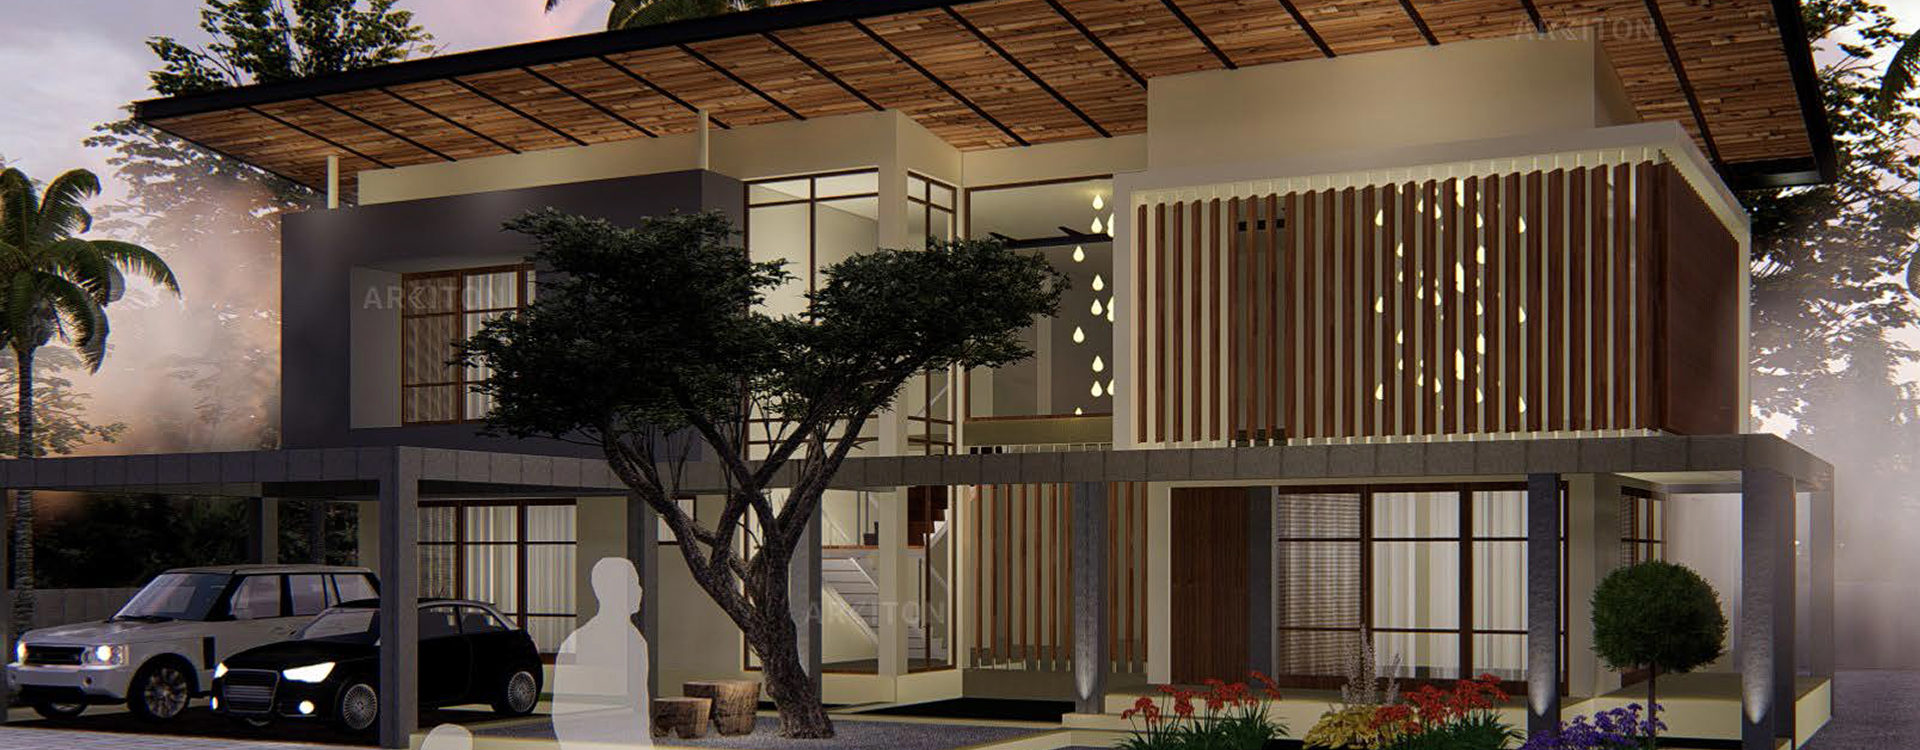 Phoenix house architecture design